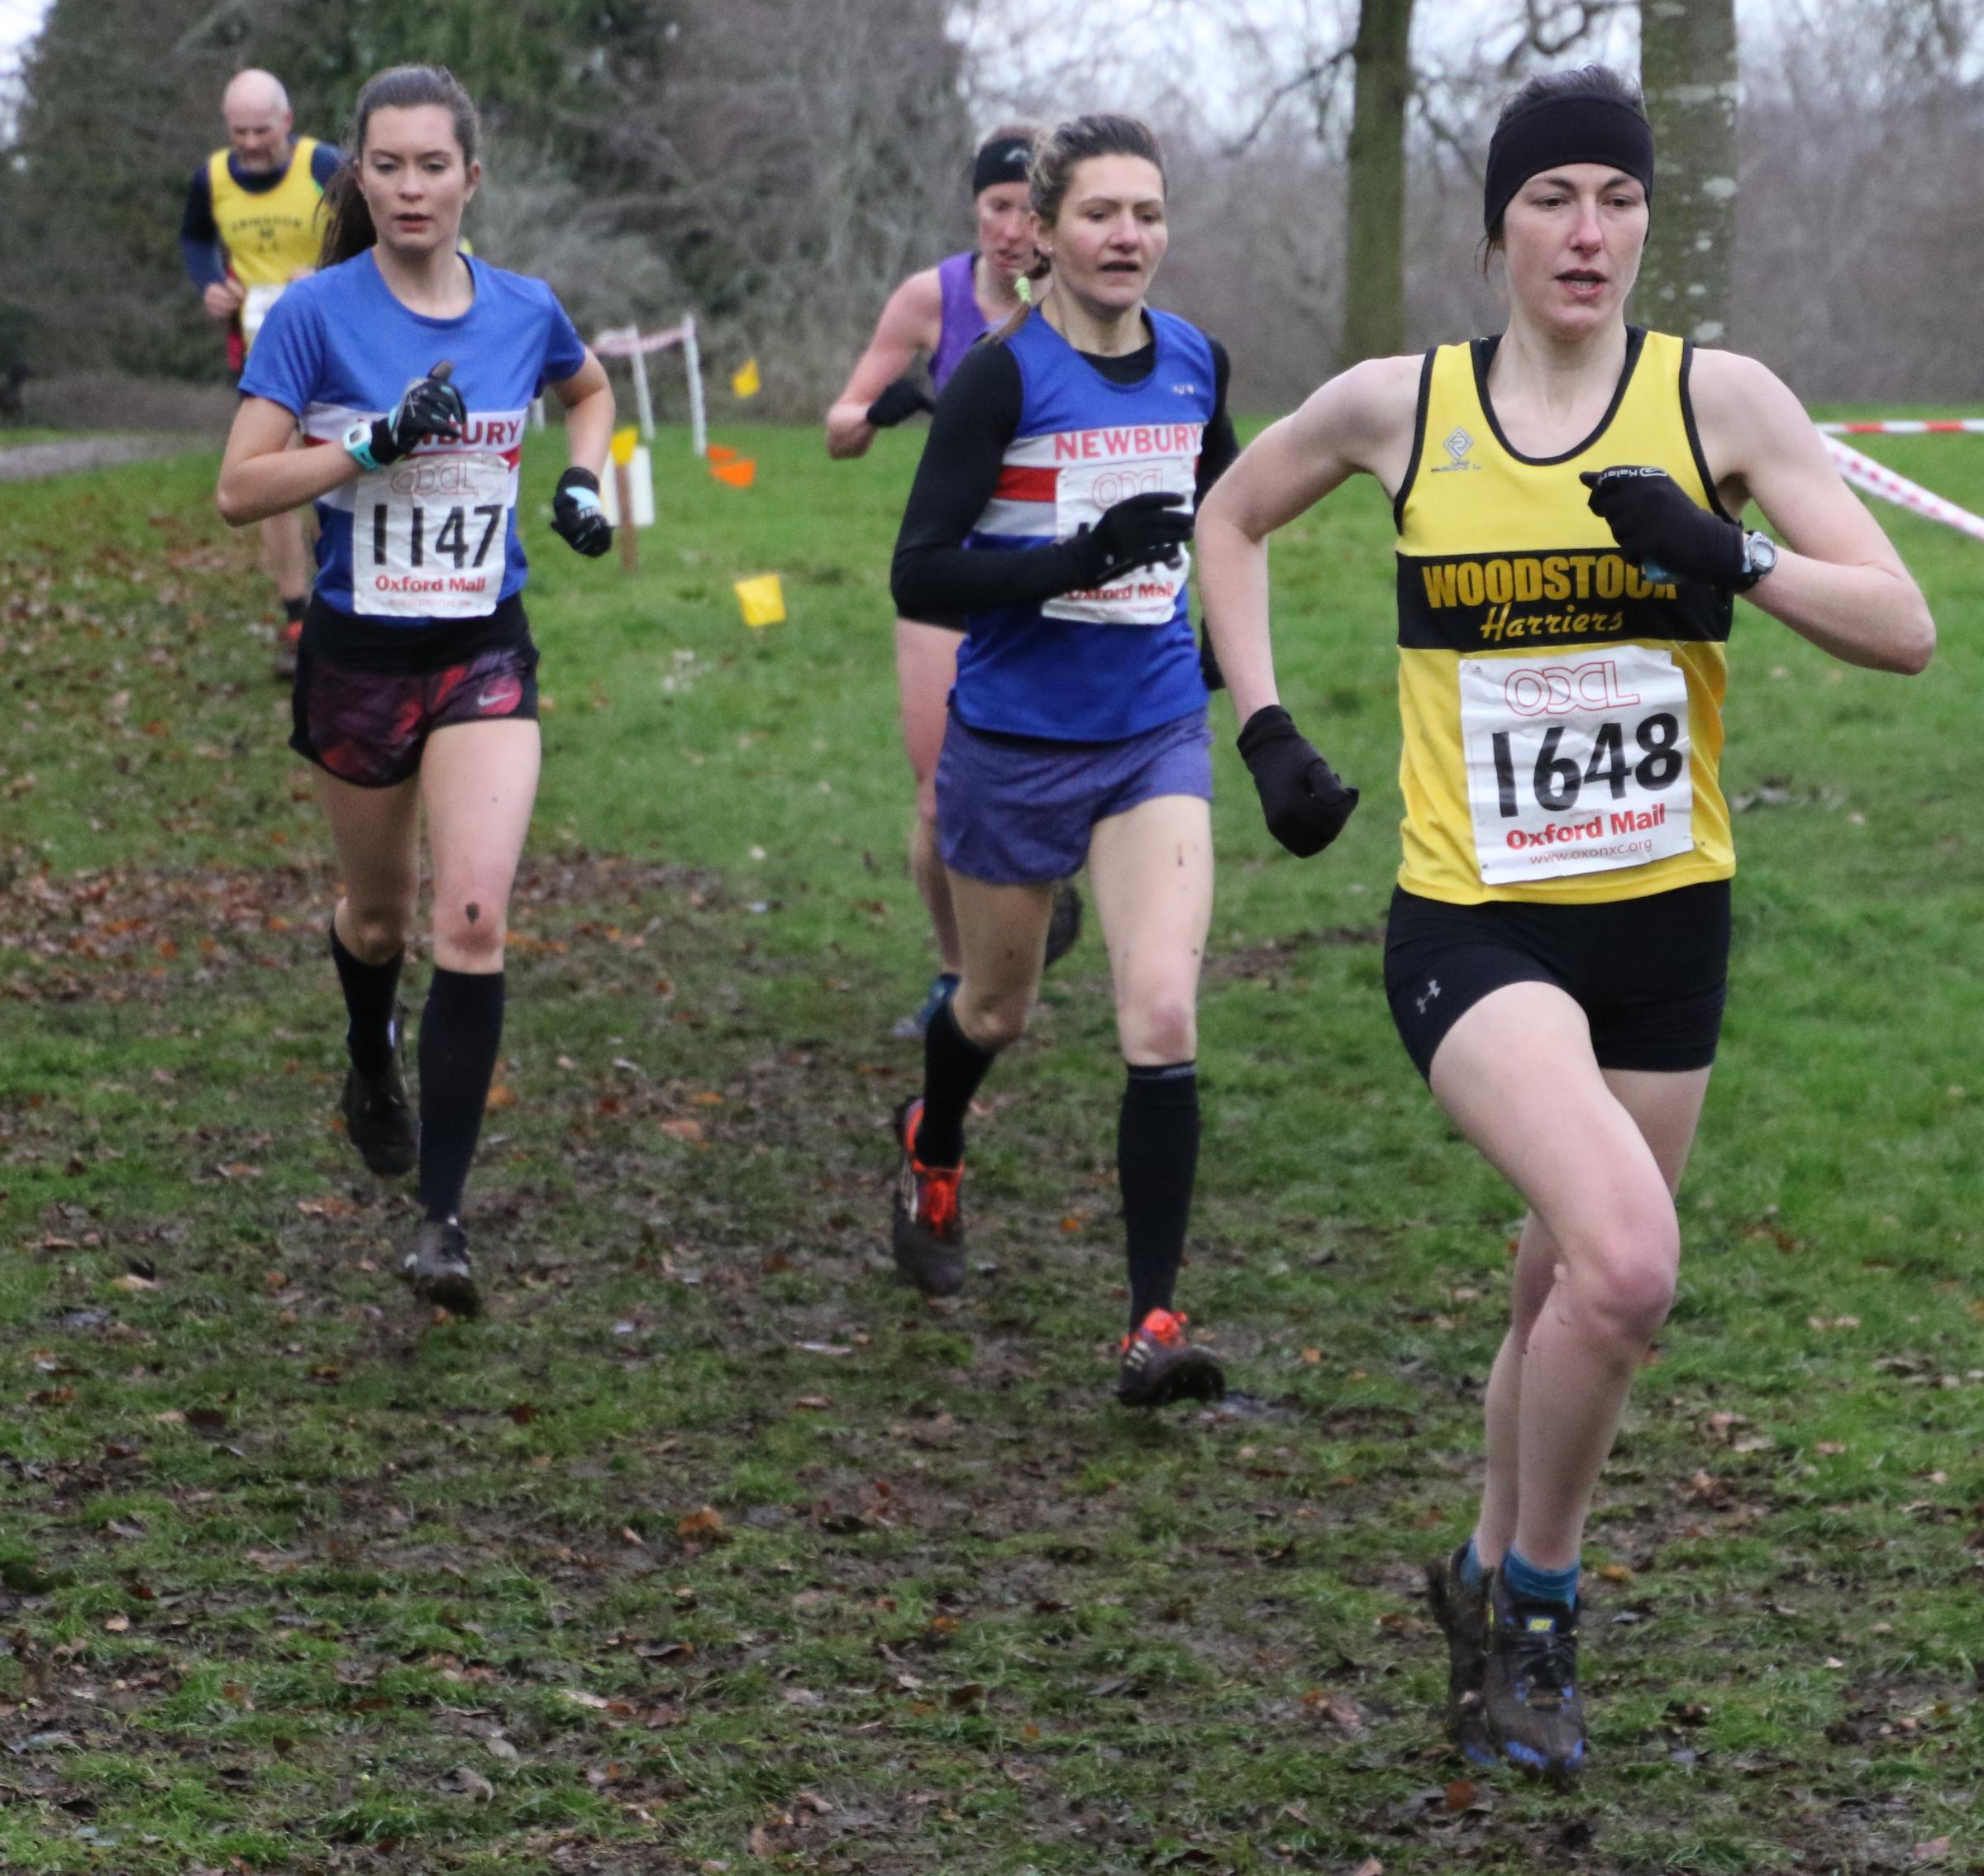 PACE: Woodstock Harrier Jessica Webb leads Newbury's Jessica Franklin and Isobel Fry Picture: Barry Cornelius